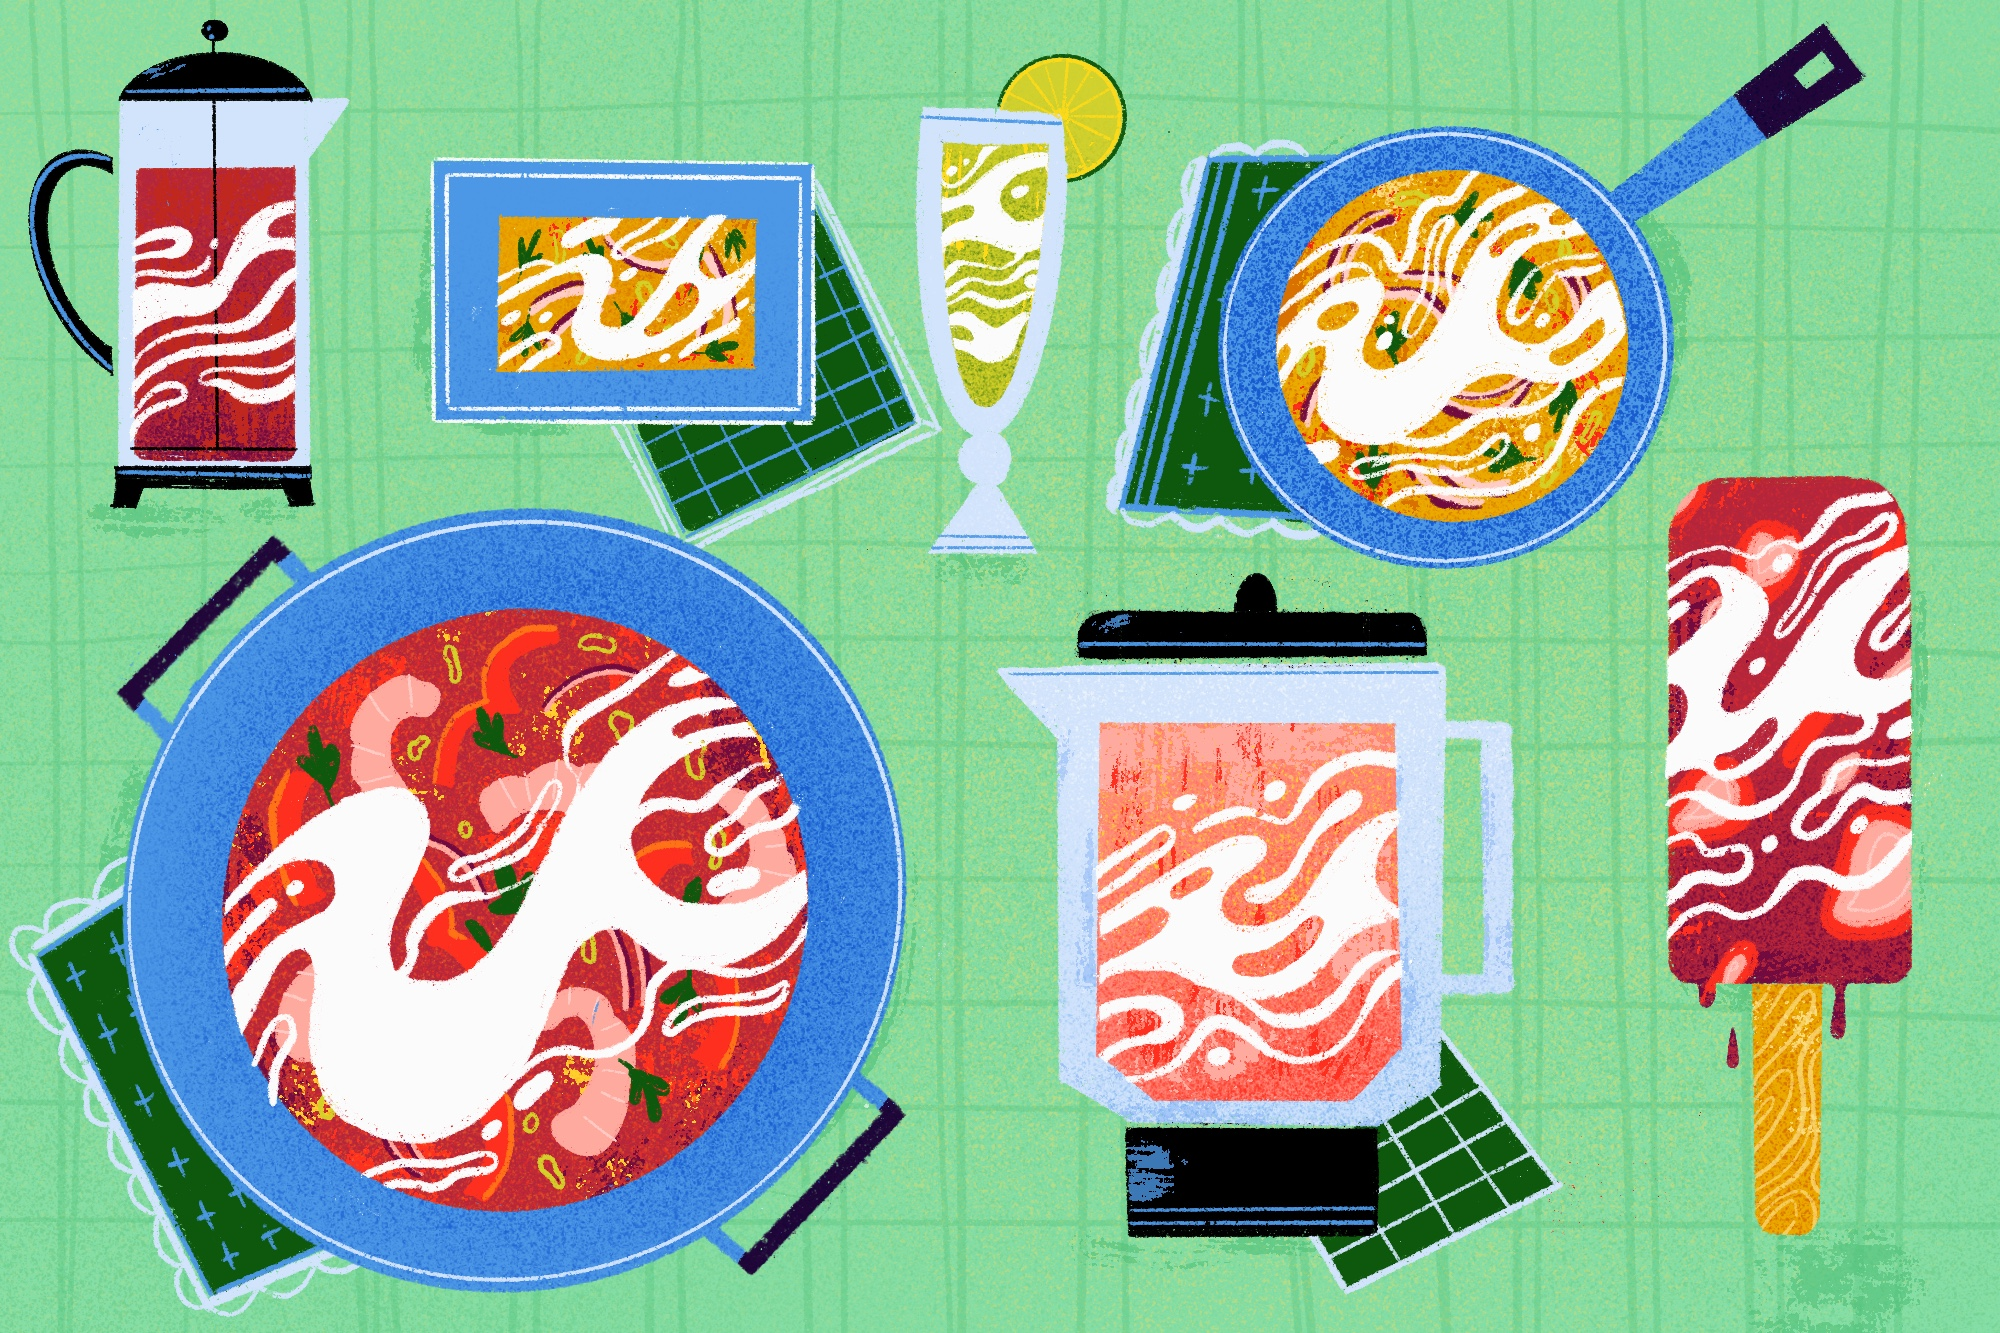 An illustration showing swirls of coconut milk in different forms against a light green background: in a pot of red stew; in a blender full of pink liquid; in a red popsicle; in coffee in a coffee carafe; in a skillet of yellow curry; in a green drink; in a rectangular yellow dish.